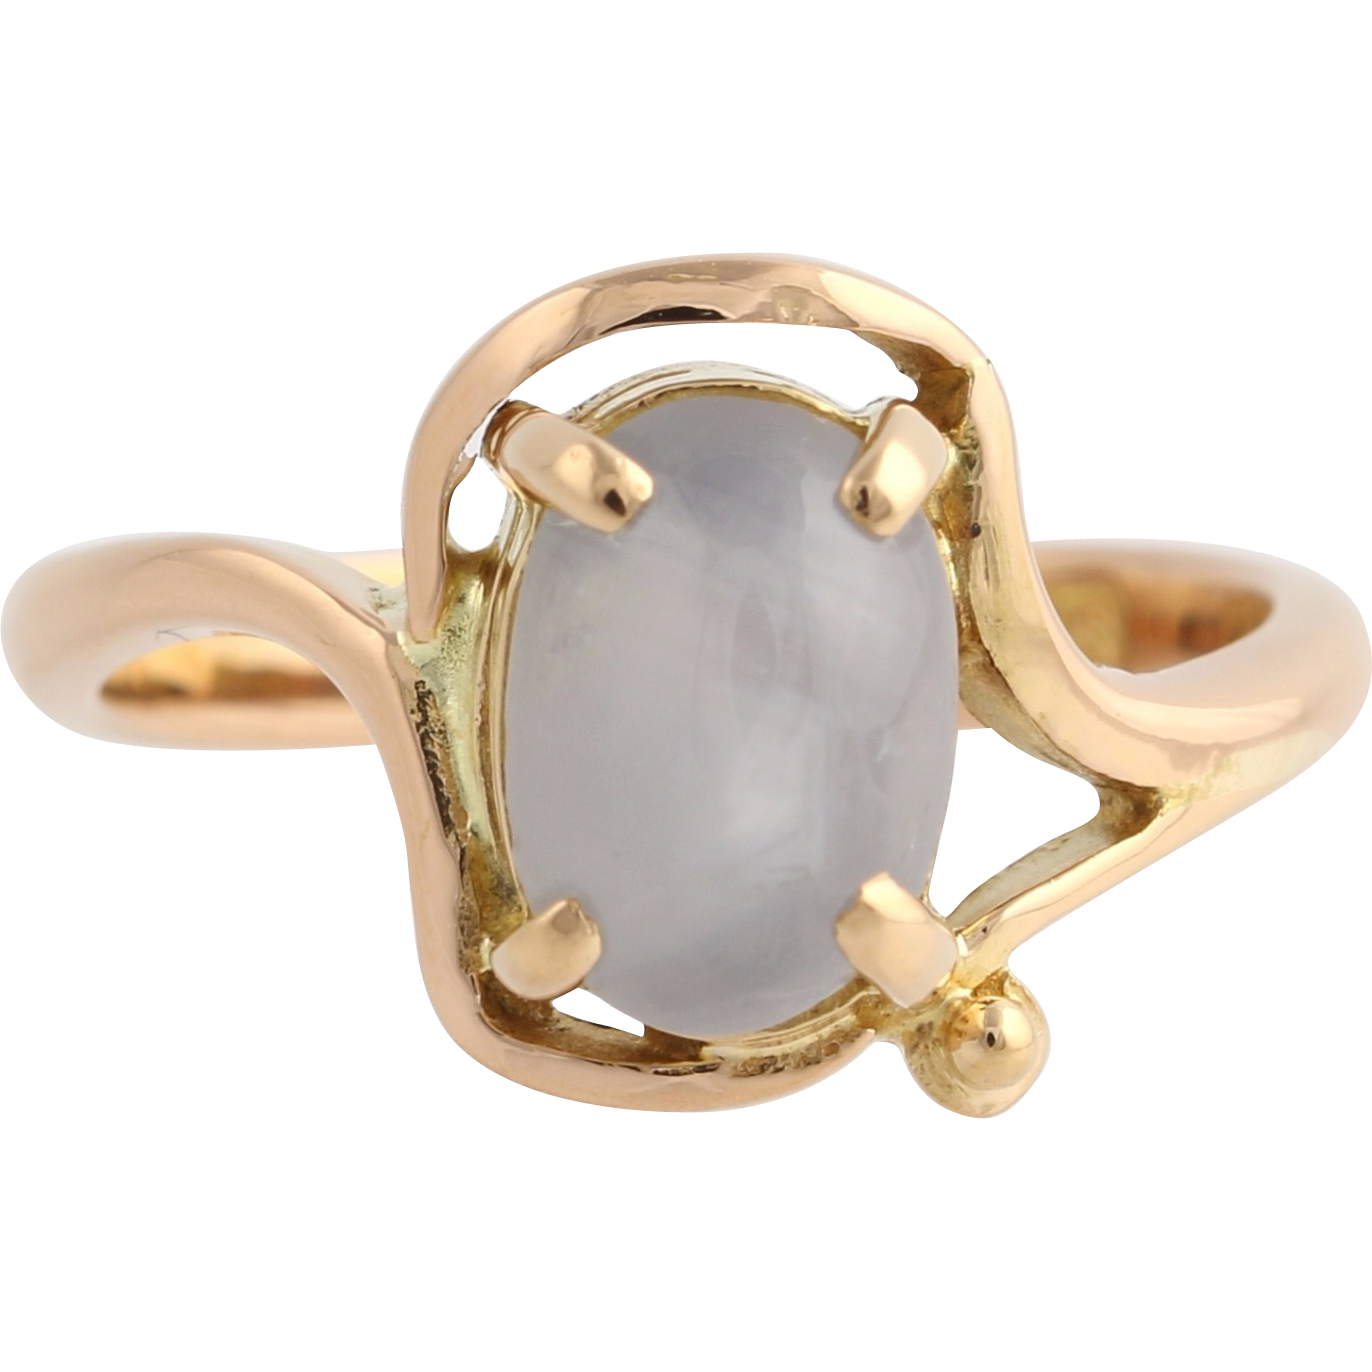 Star Sapphire Bypass Ring - 870 Pure Gold 3.93ct Rose Light Blue Grey Estate